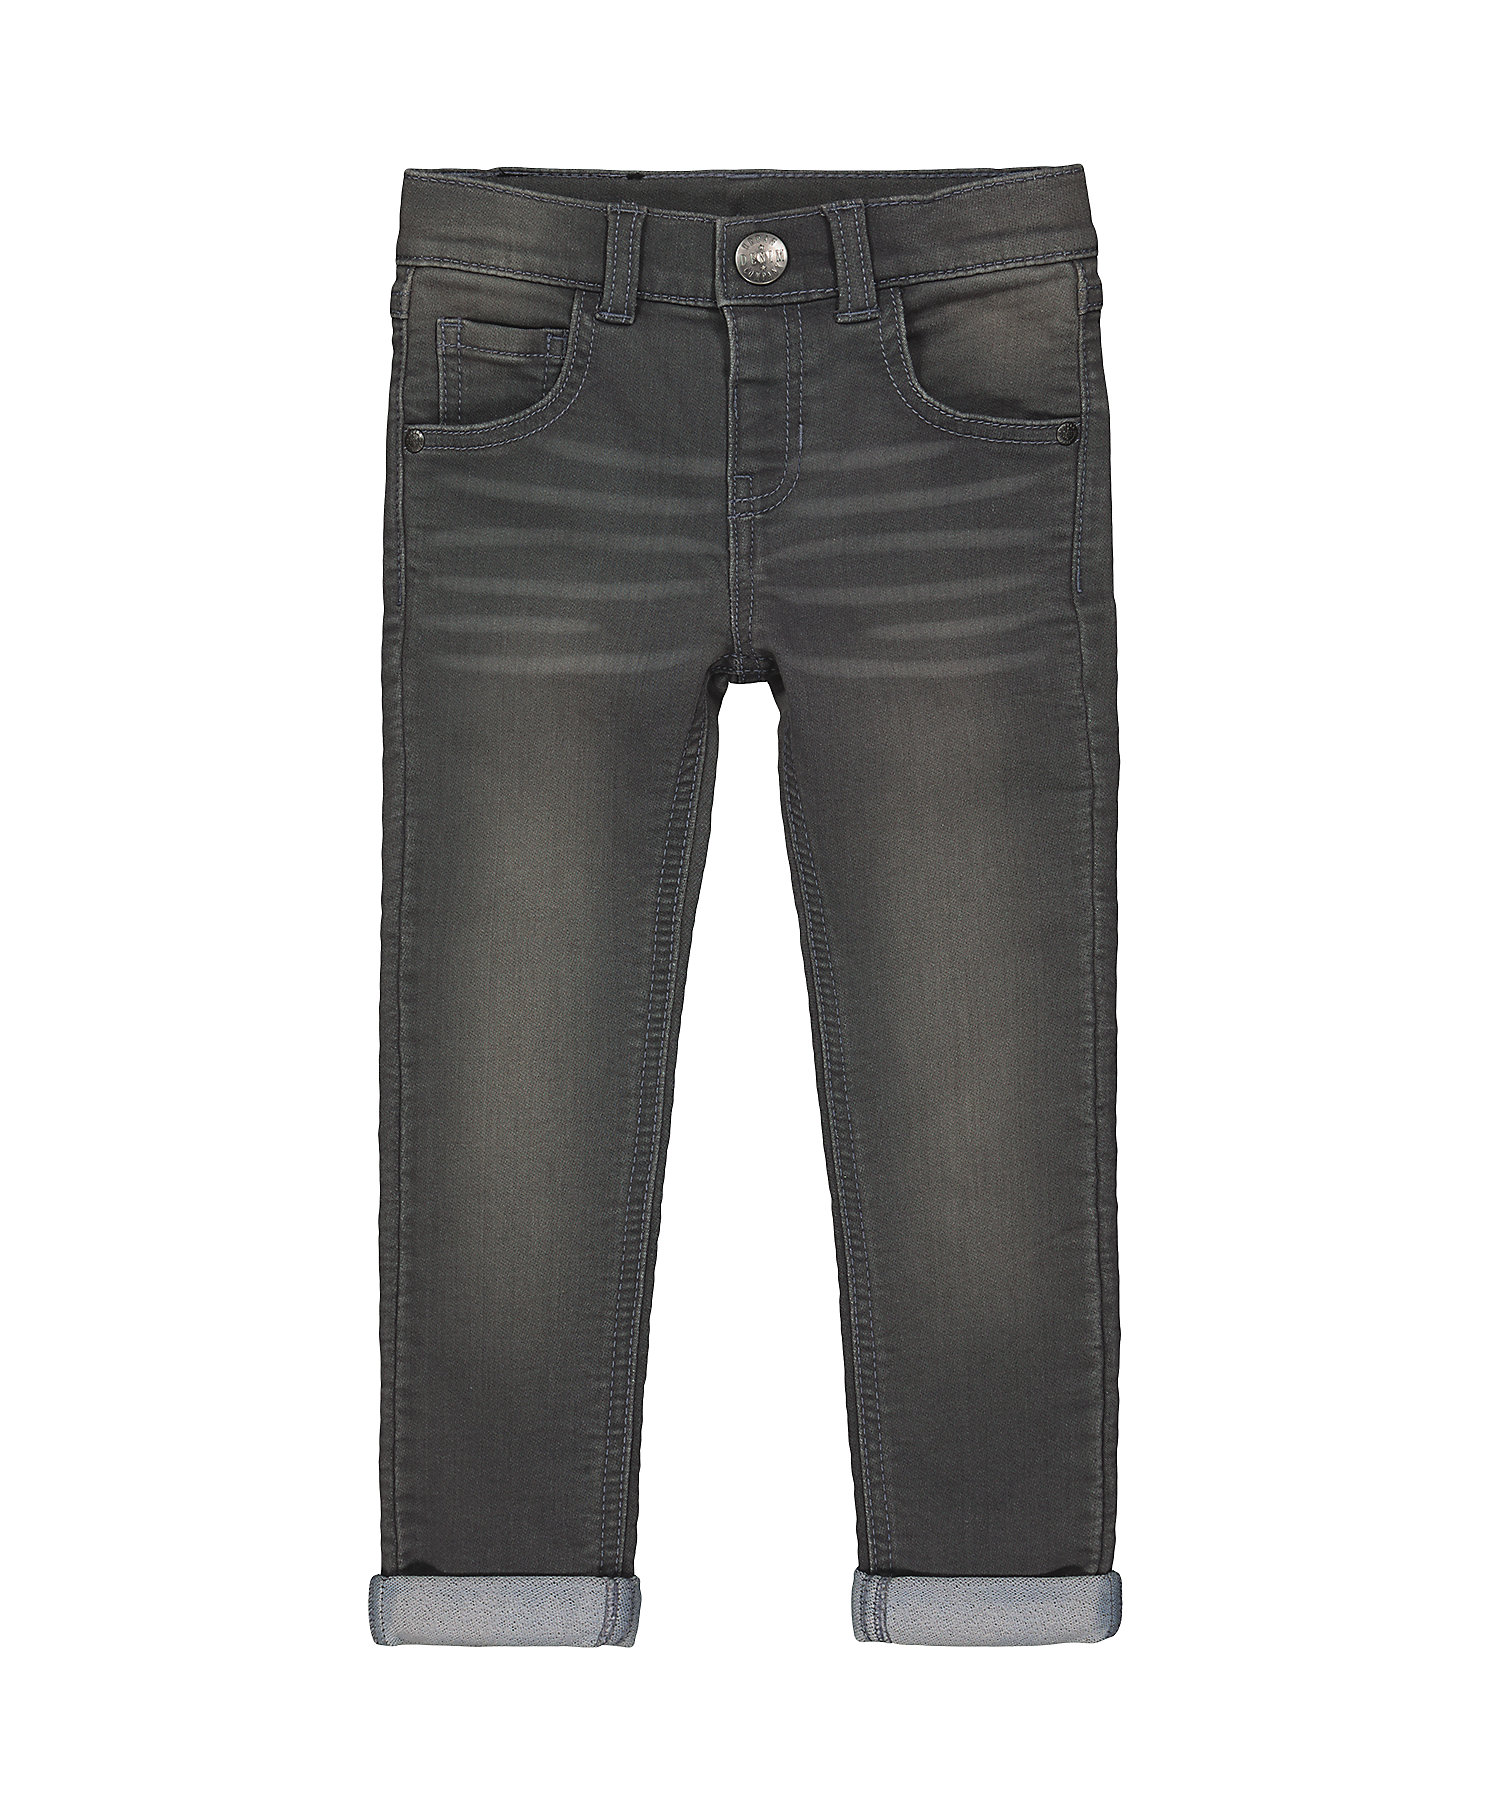 Mothercare | Boys Jeans Crease Detailing - Grey